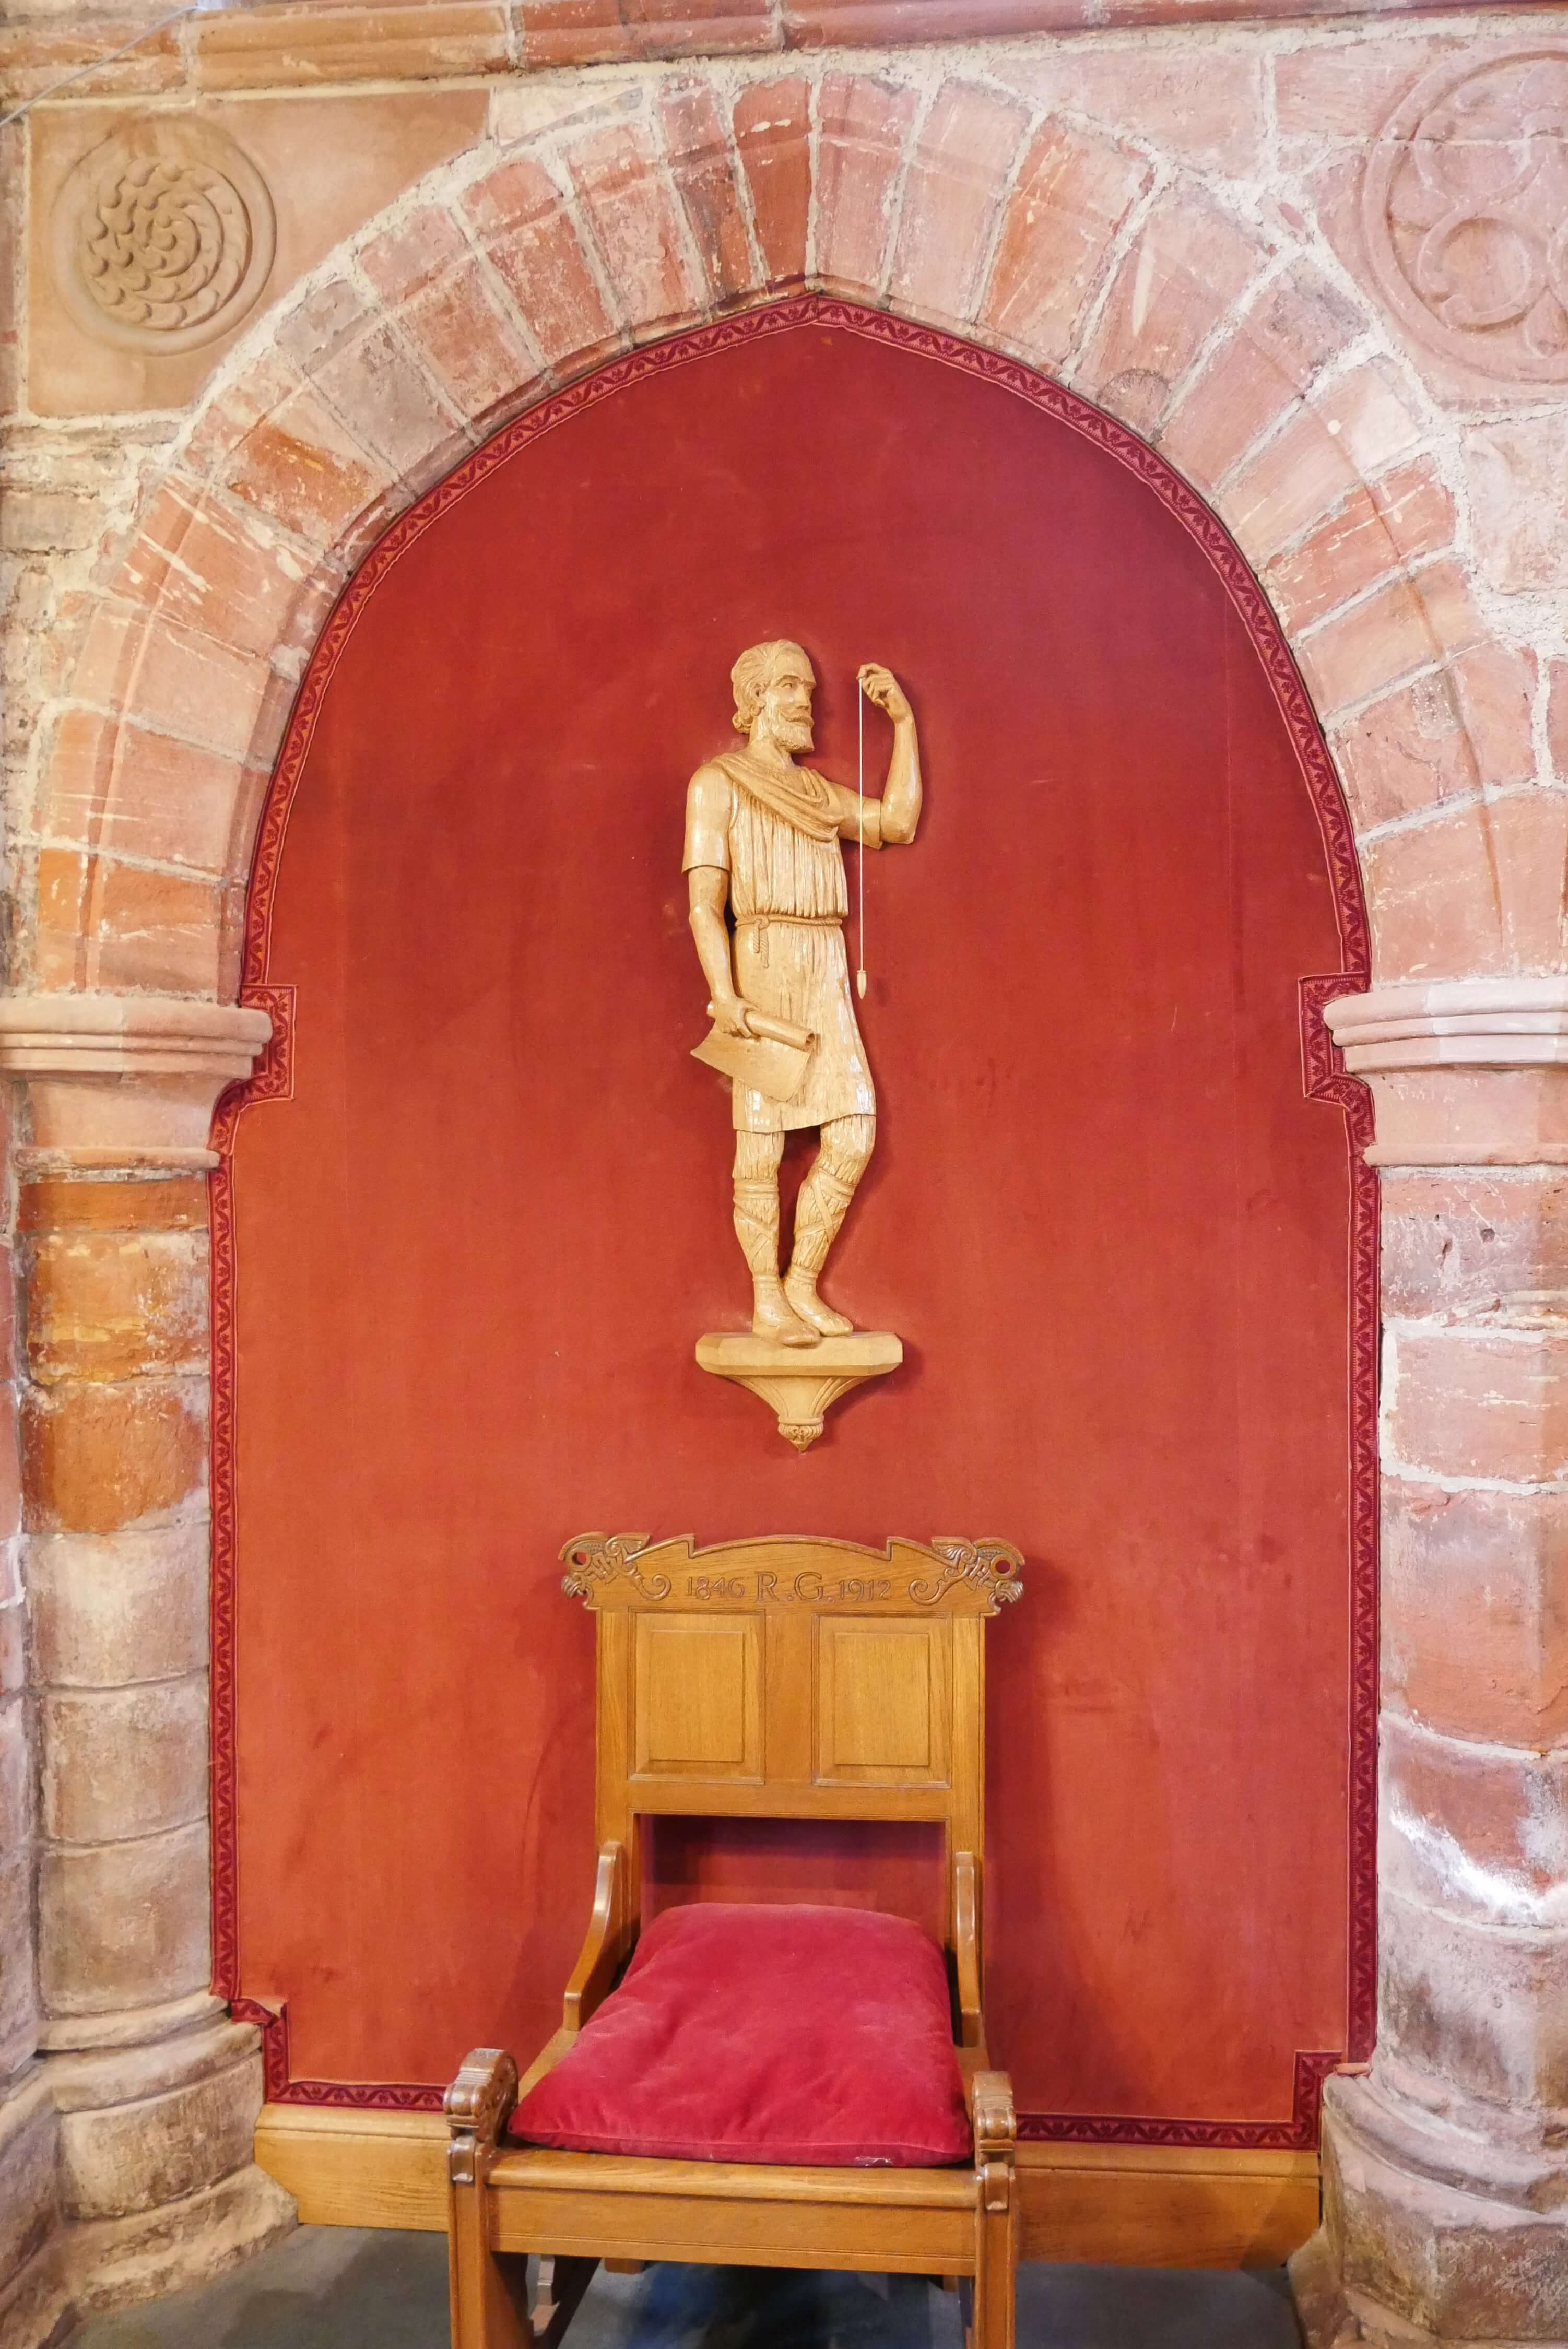 Carved representation of Kol Kalisson, St Rognavald's father who oversaw the early building of the cathedral in Kirkwall, Orkney, Scotland, UK